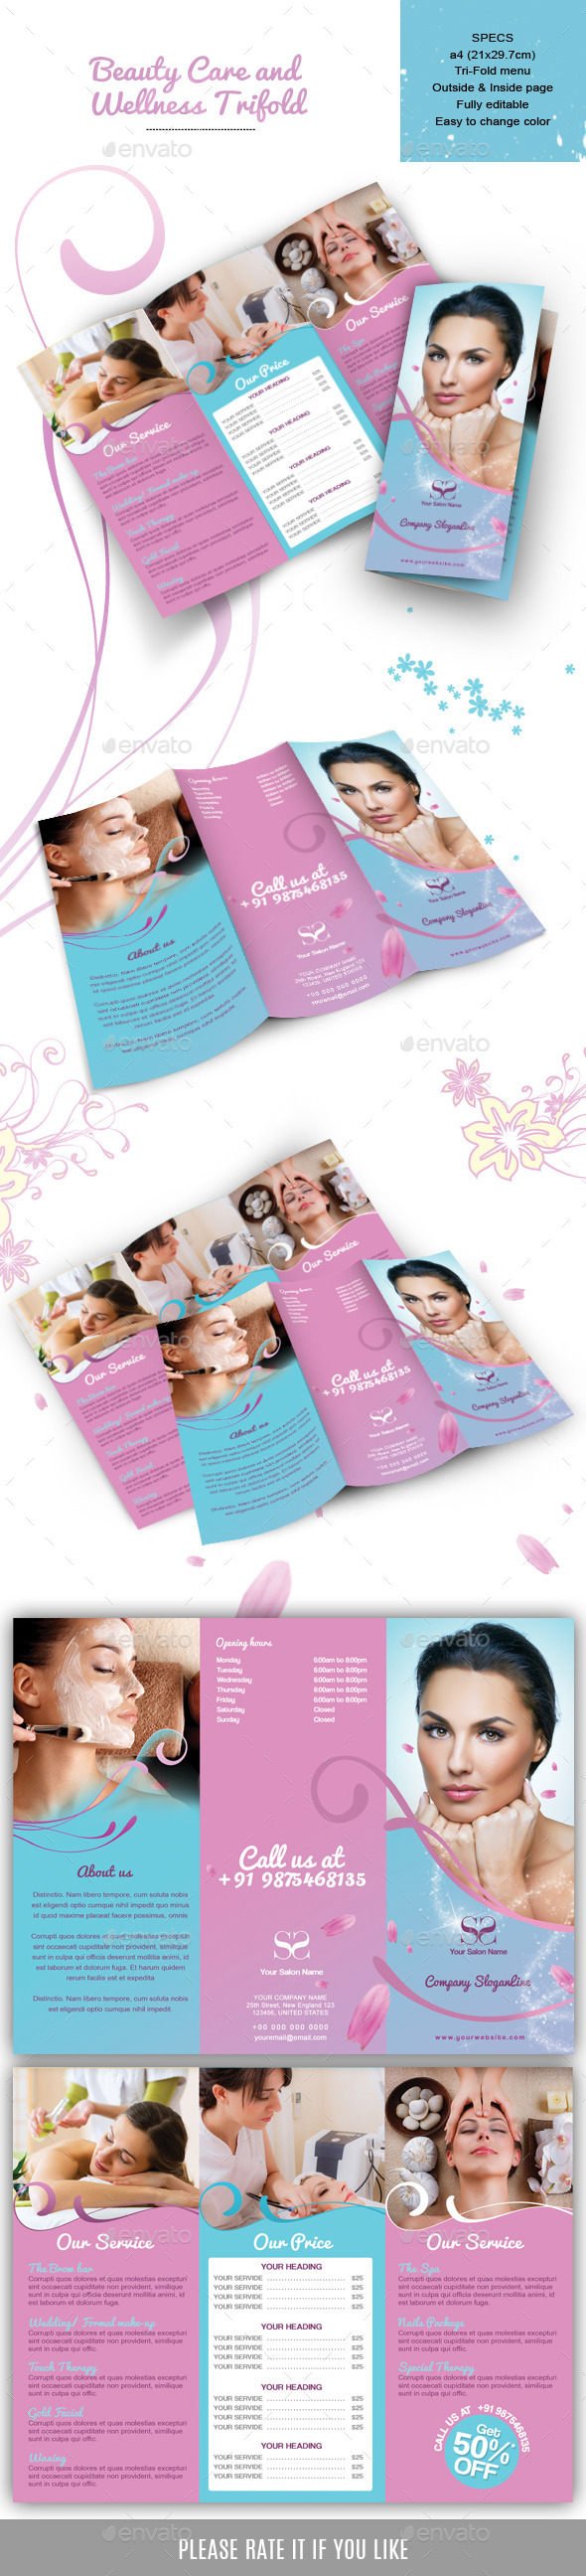 GraphicRiver Beauty Care and Wellness Trifold 9158064